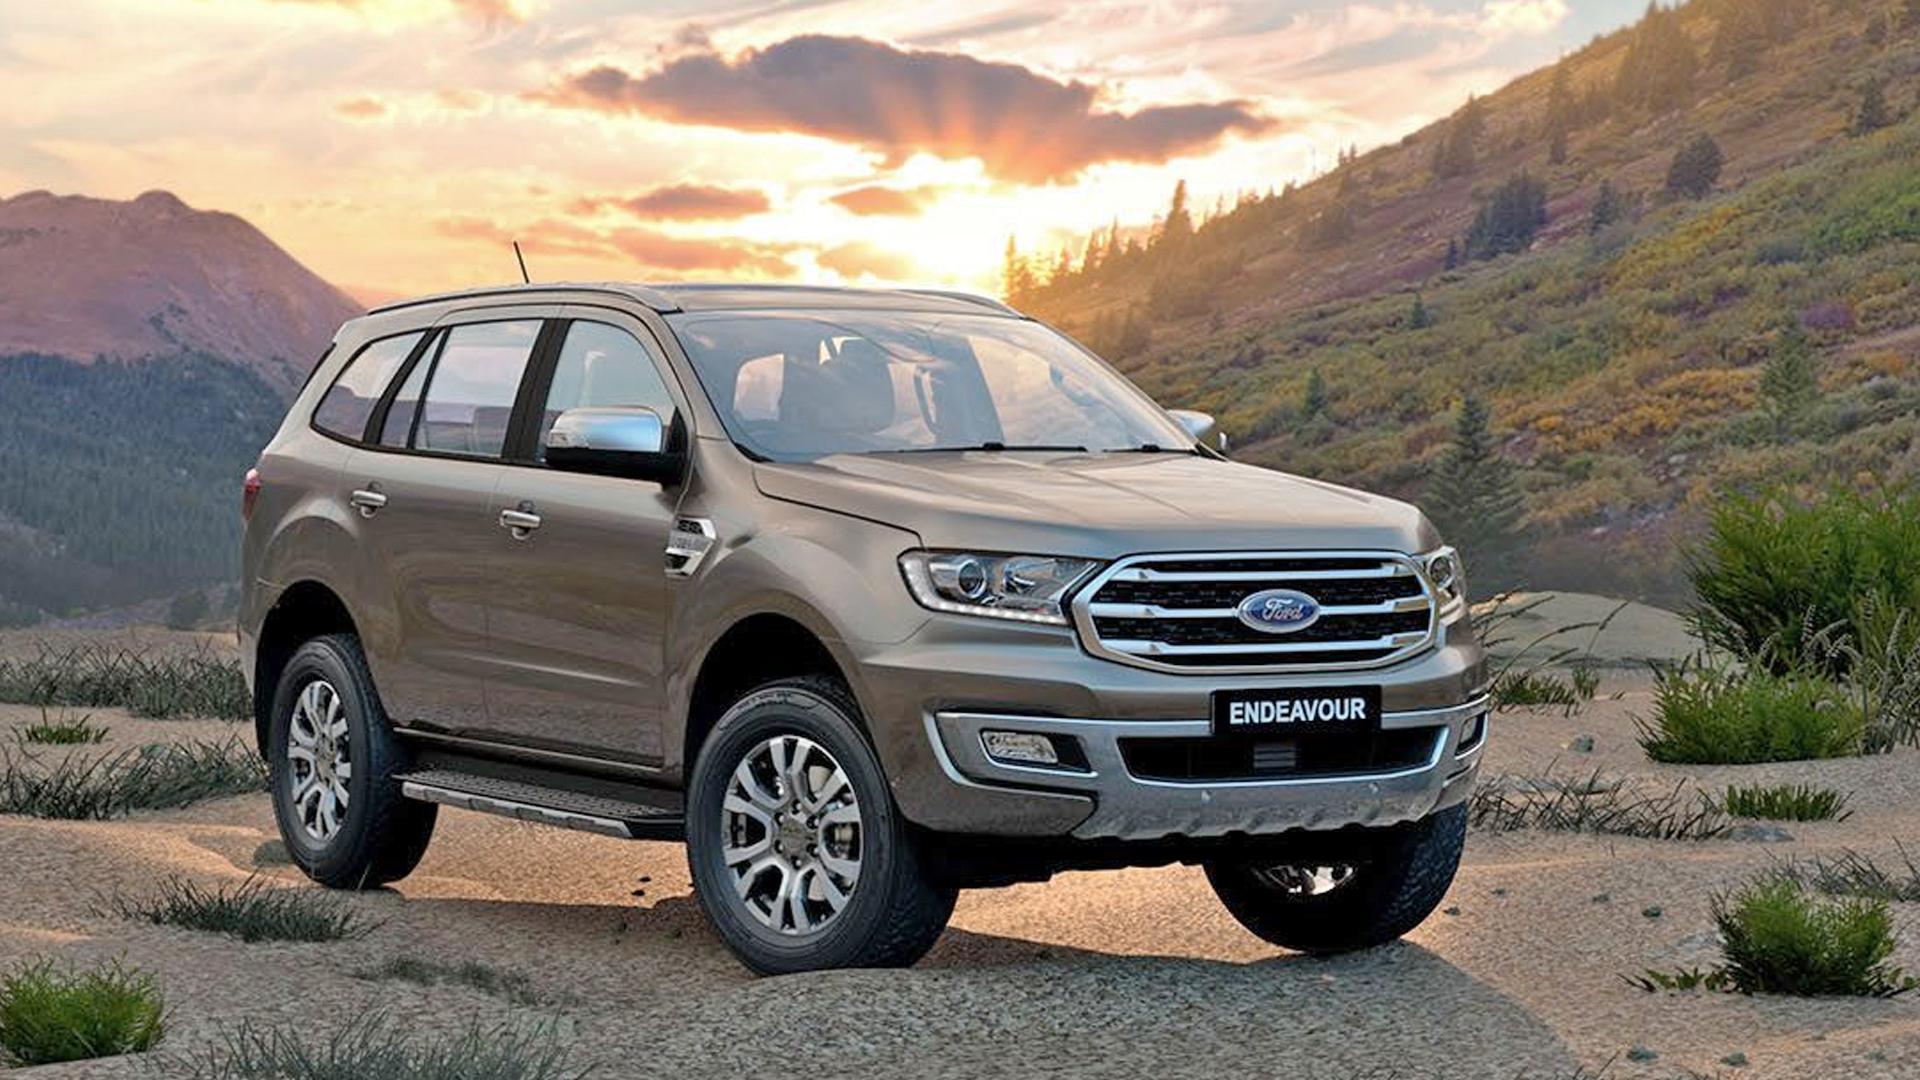 Ford Endeavour 2019 3.2 AT Titanium+ 4x4